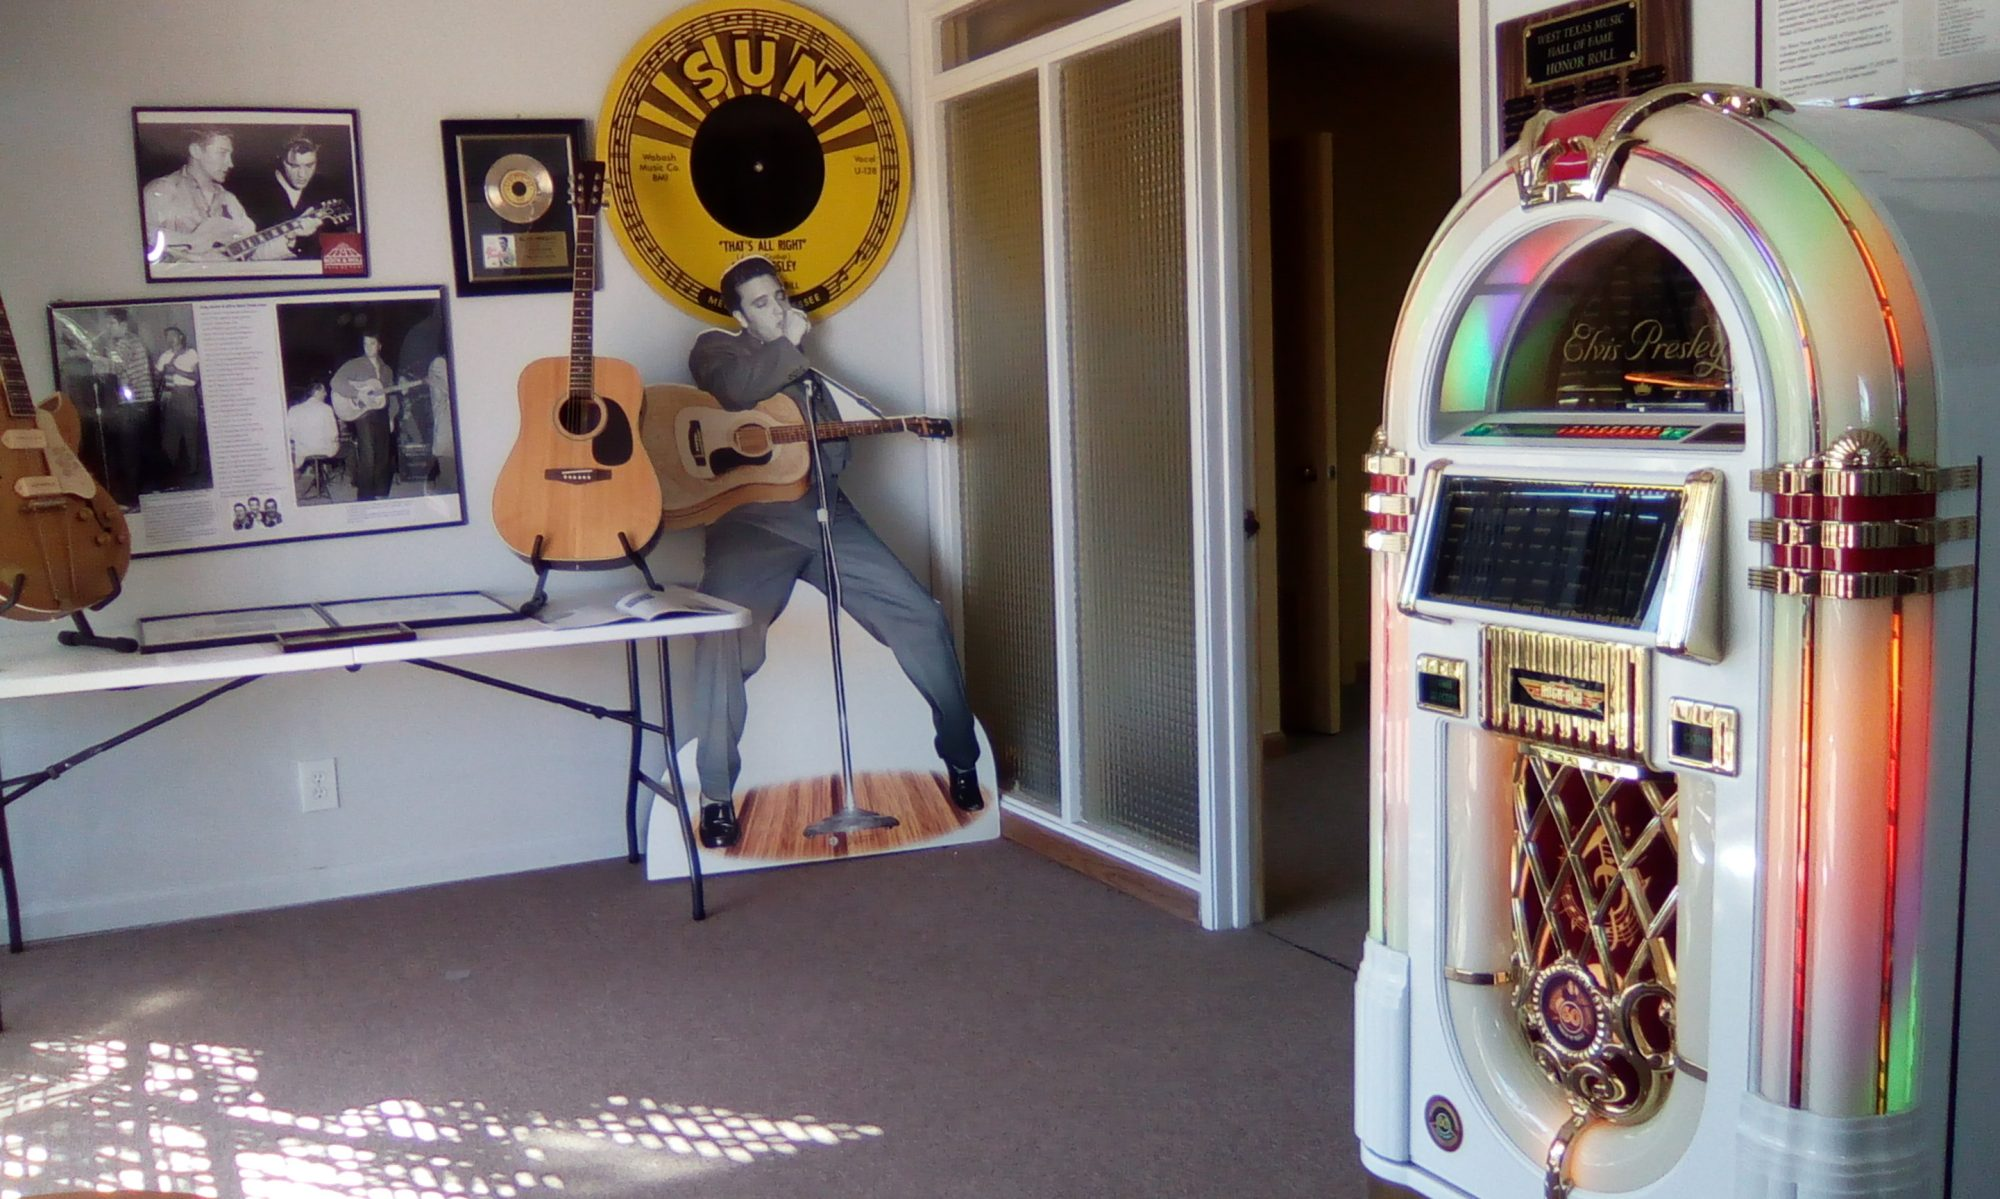 west texas music hall of fame museum